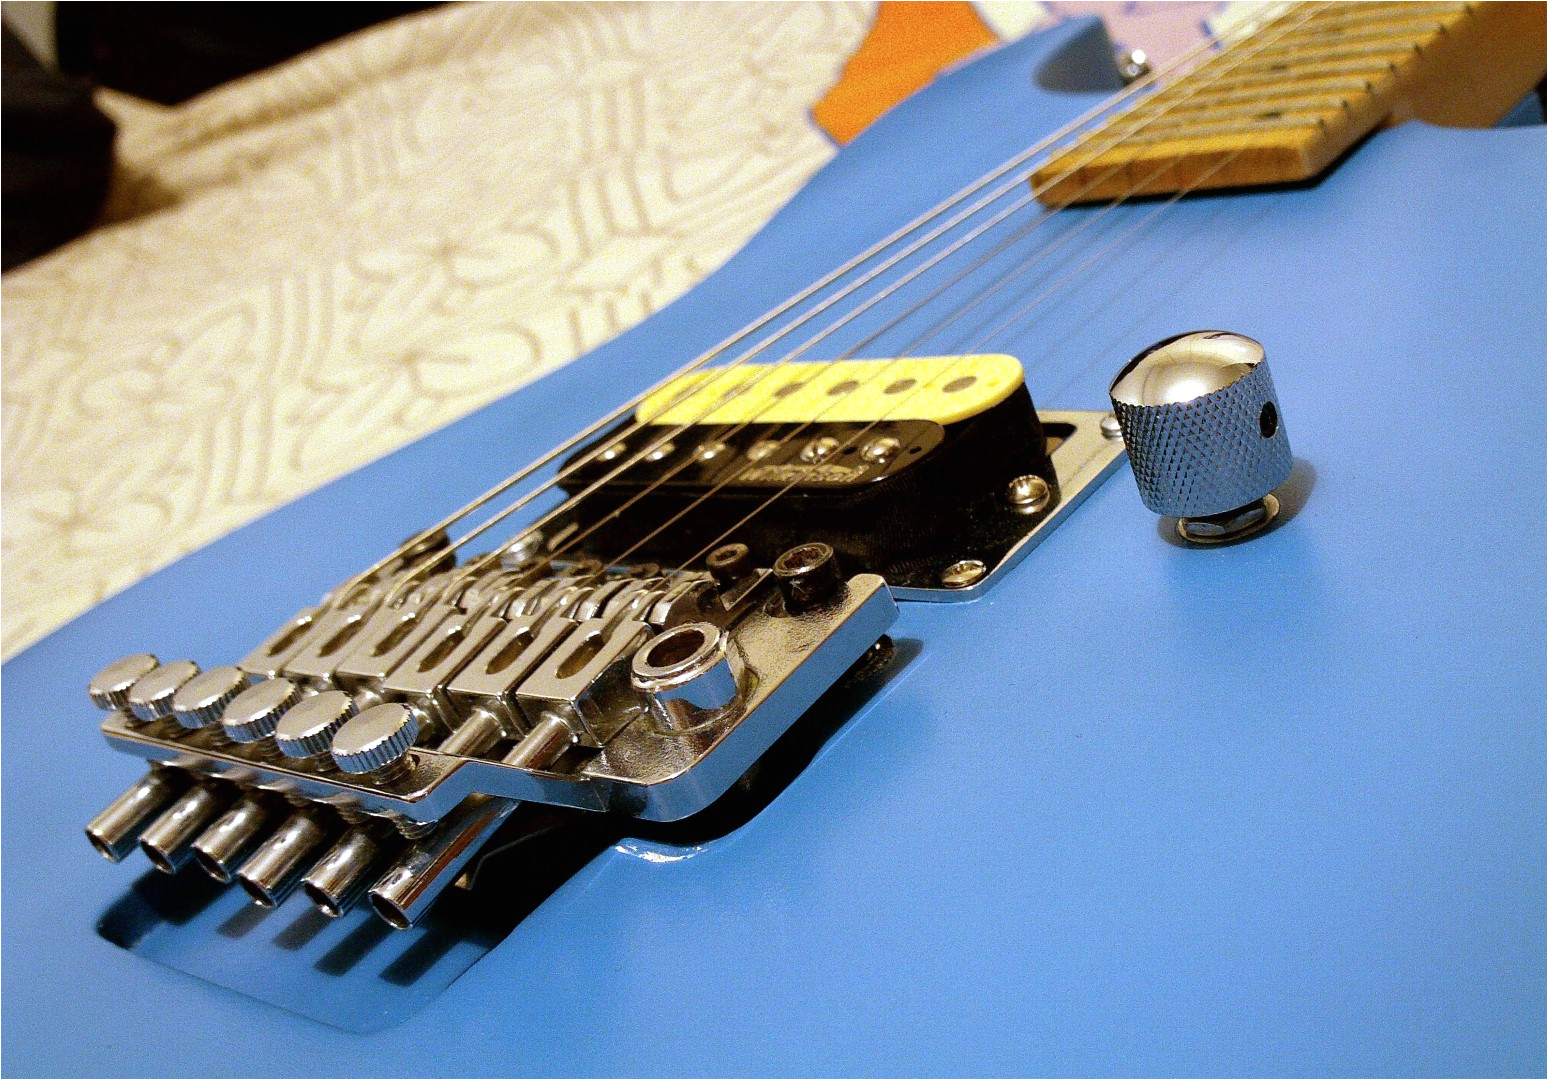 as for the hardware the tremolo is a single locking floyd rose licensed one the tuners are the original ibanez rg550 ones the locking nut is brand new